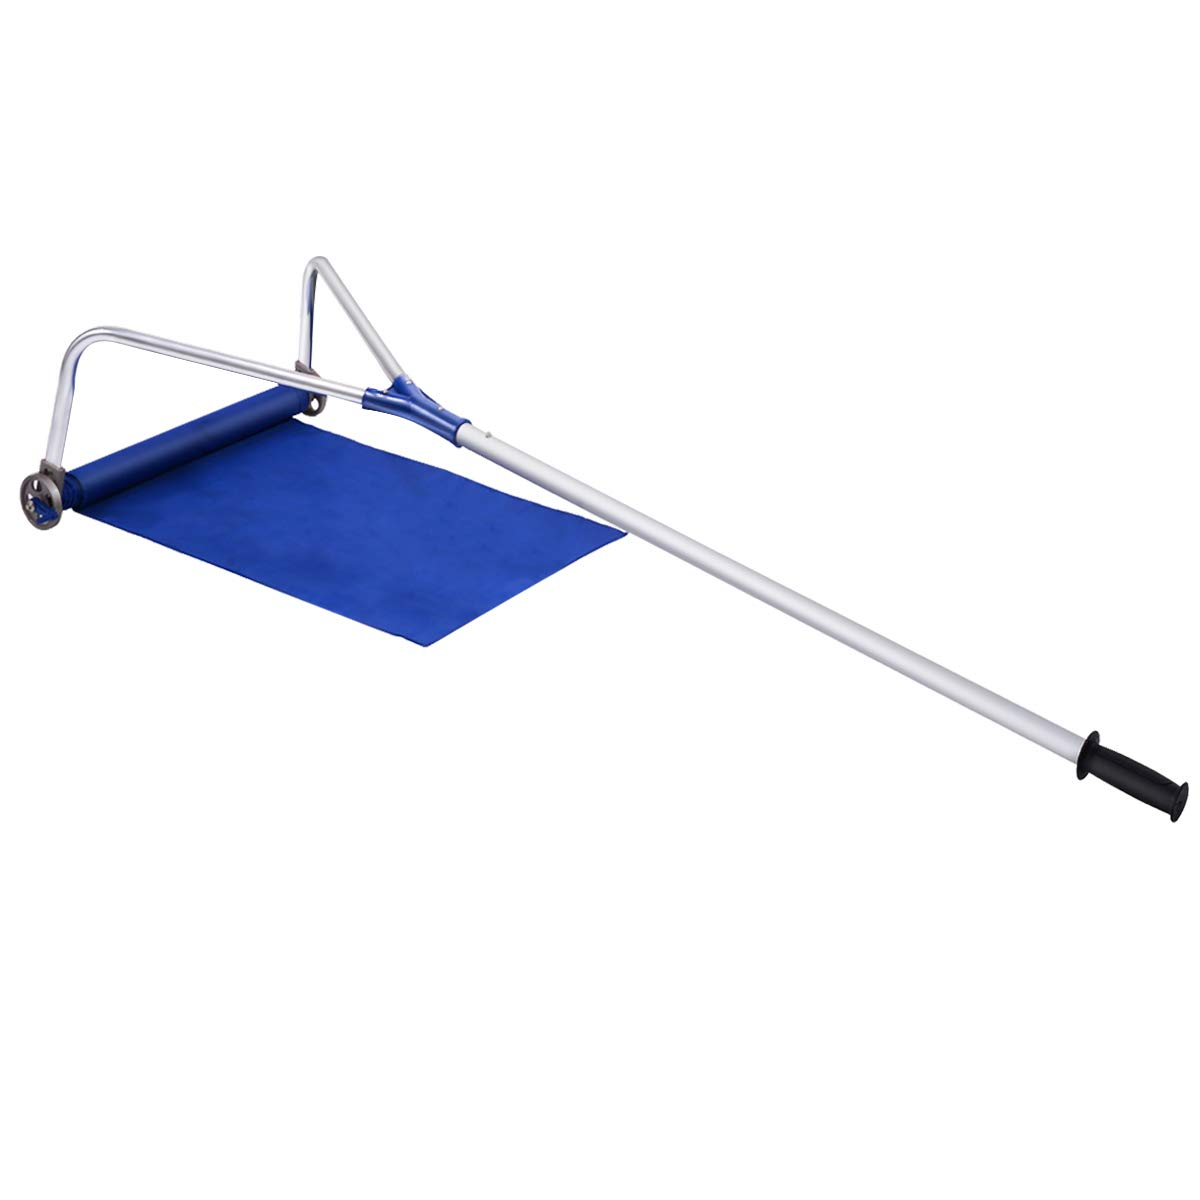 Goplus Roof Snow Rake Removal Tool 20 ft with Adjustable Telescoping Handle by Goplus